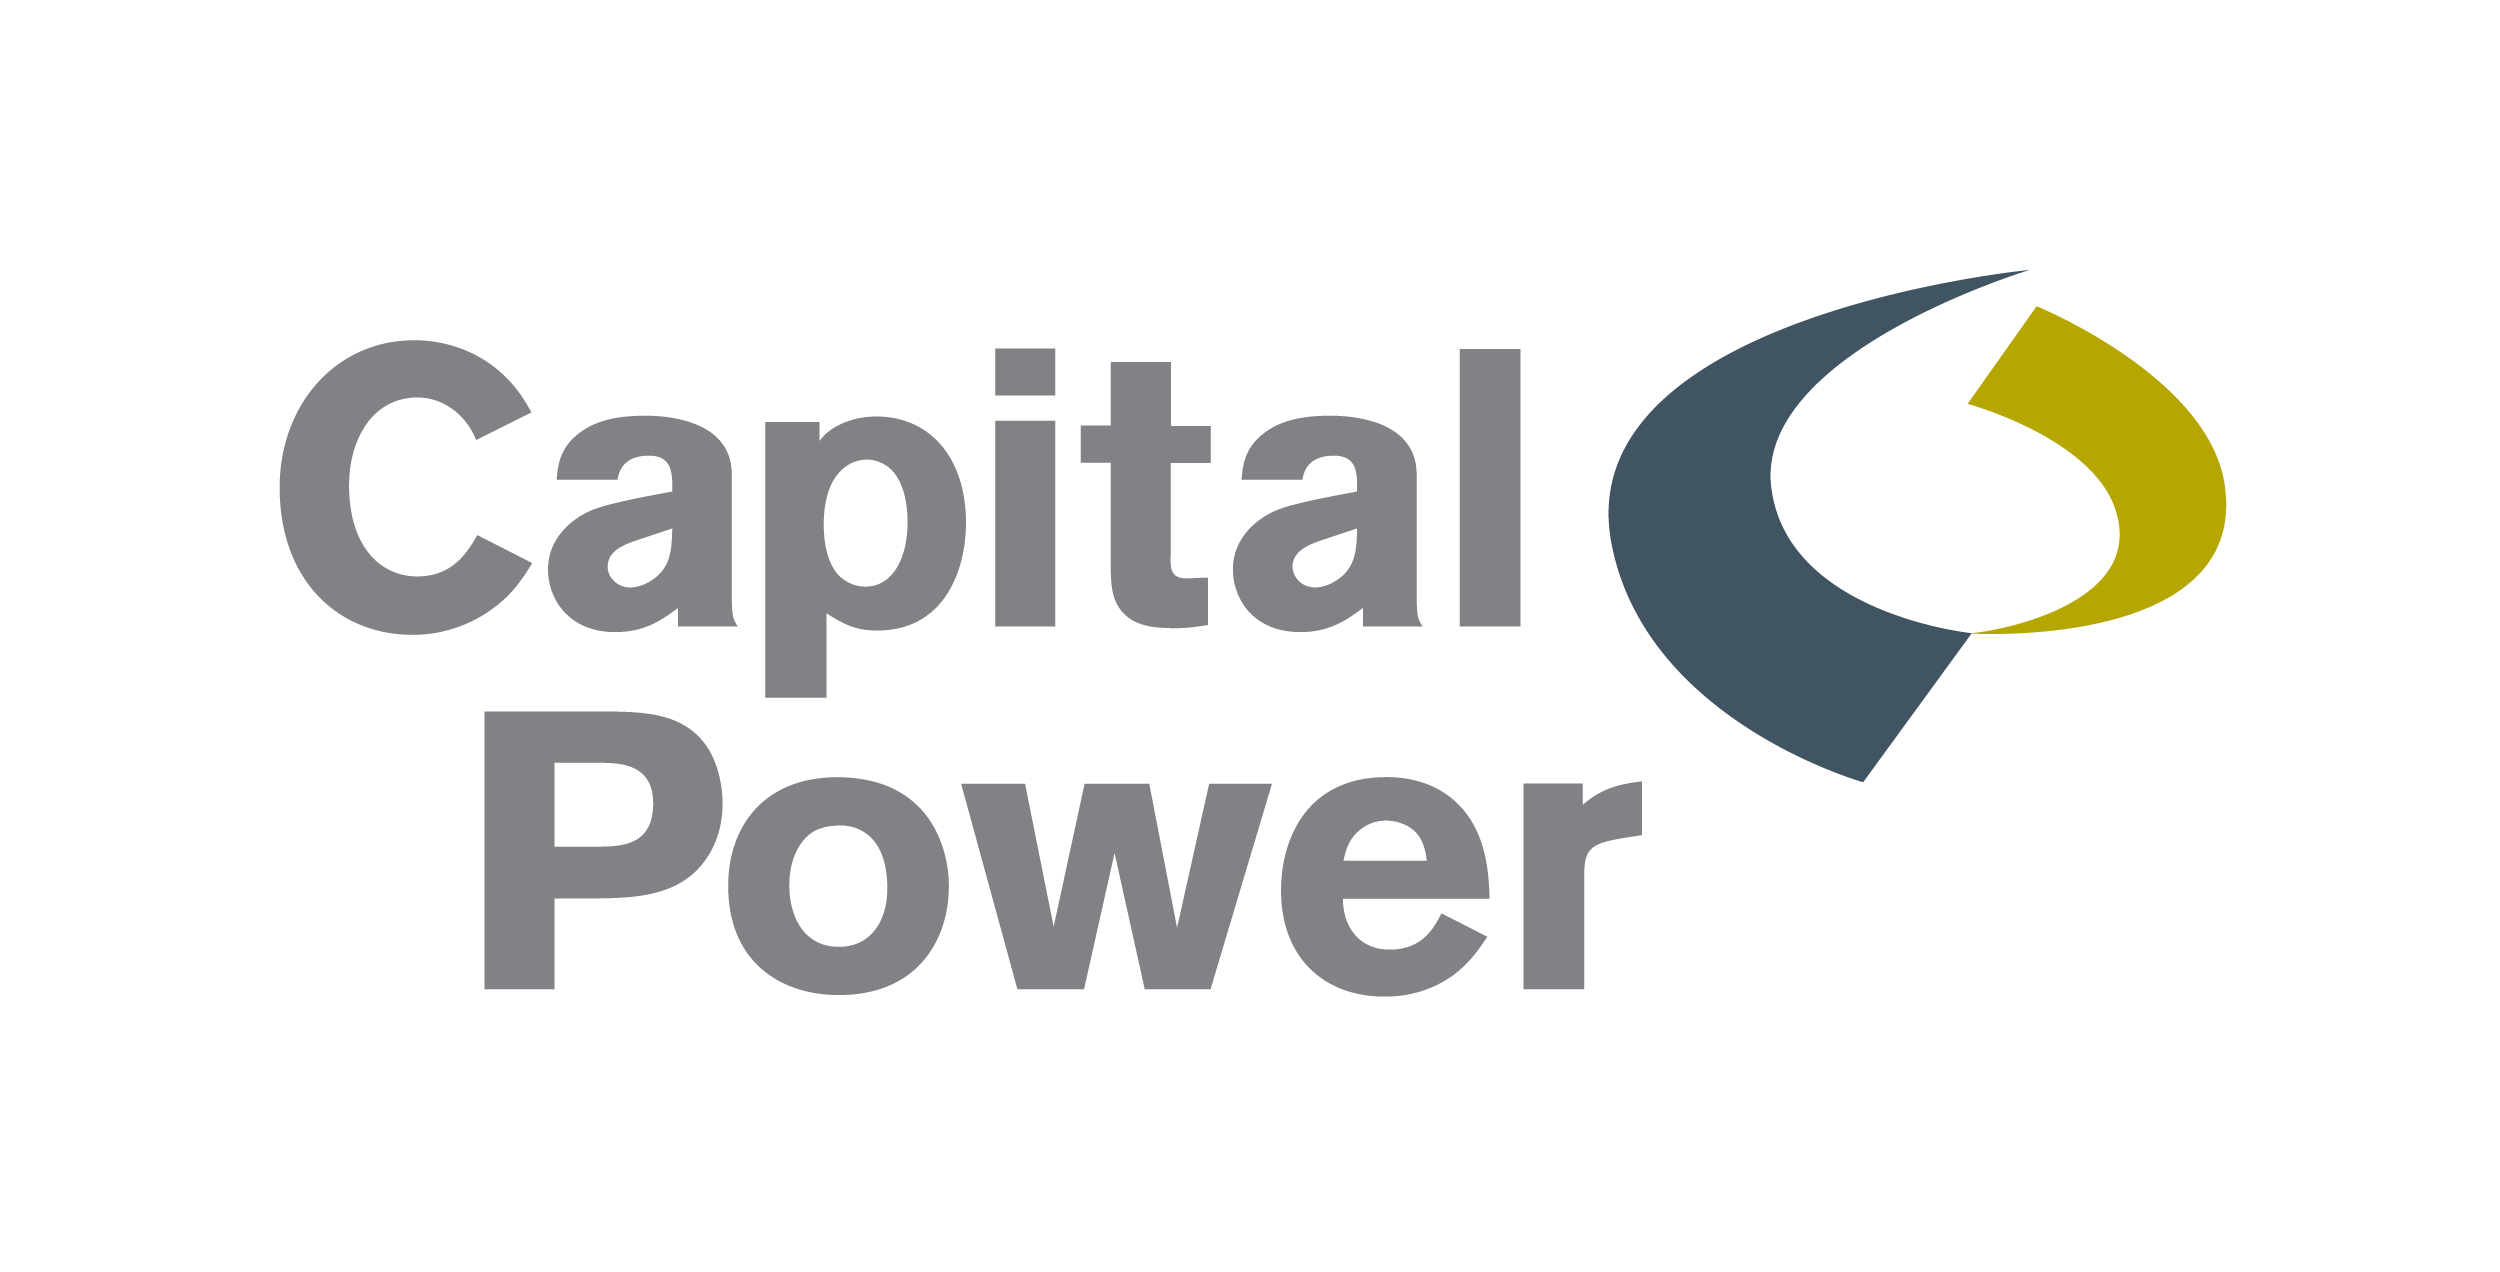 LARGECapital-Power_CMYK-2500x1200-transparent